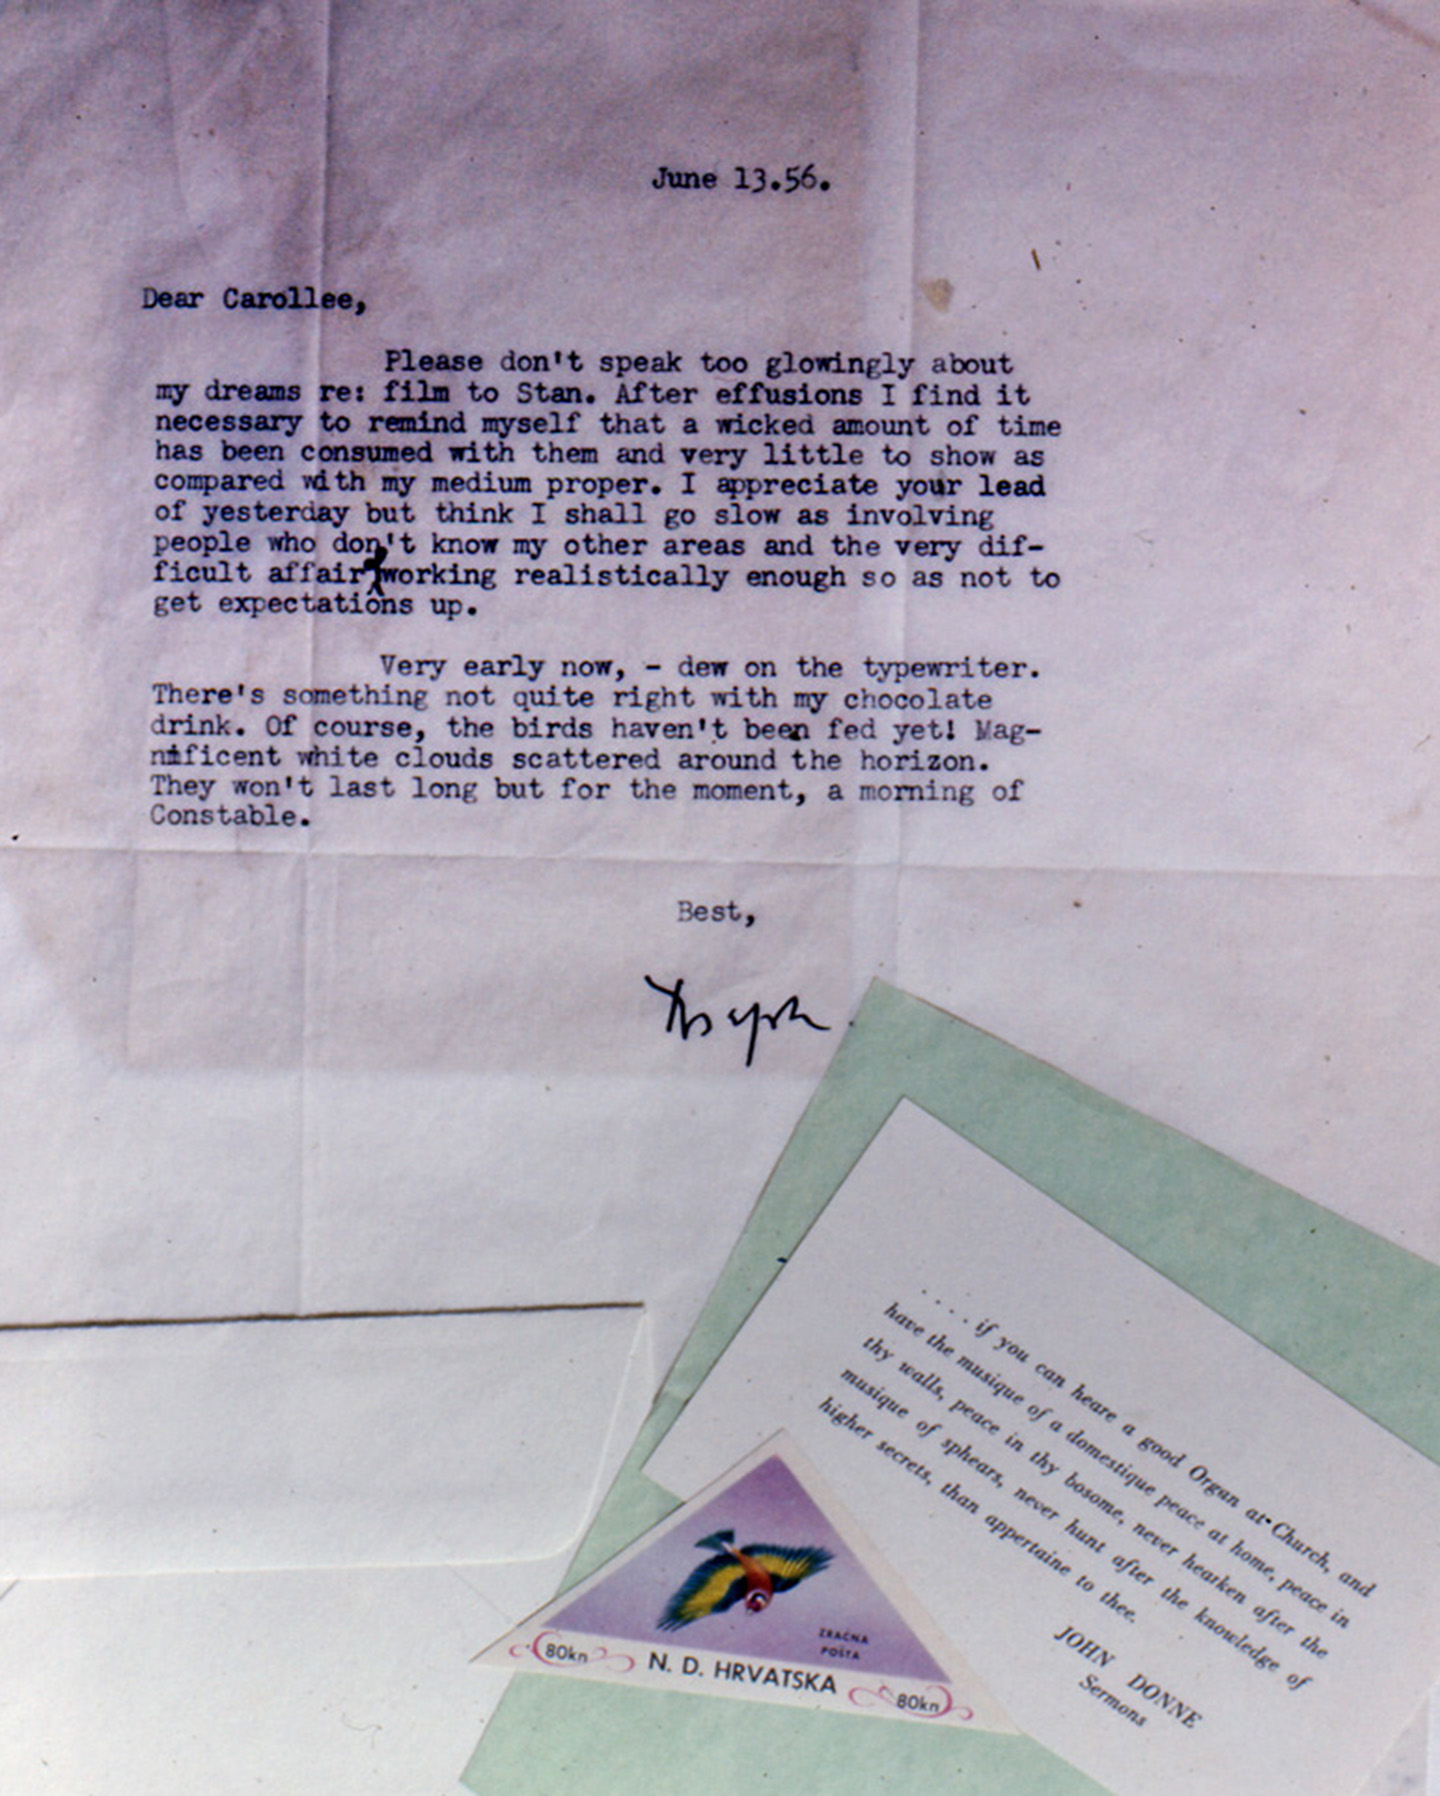 A letter written by Joseph Cornell in 1956. Image copyright Carolee Schneemann.